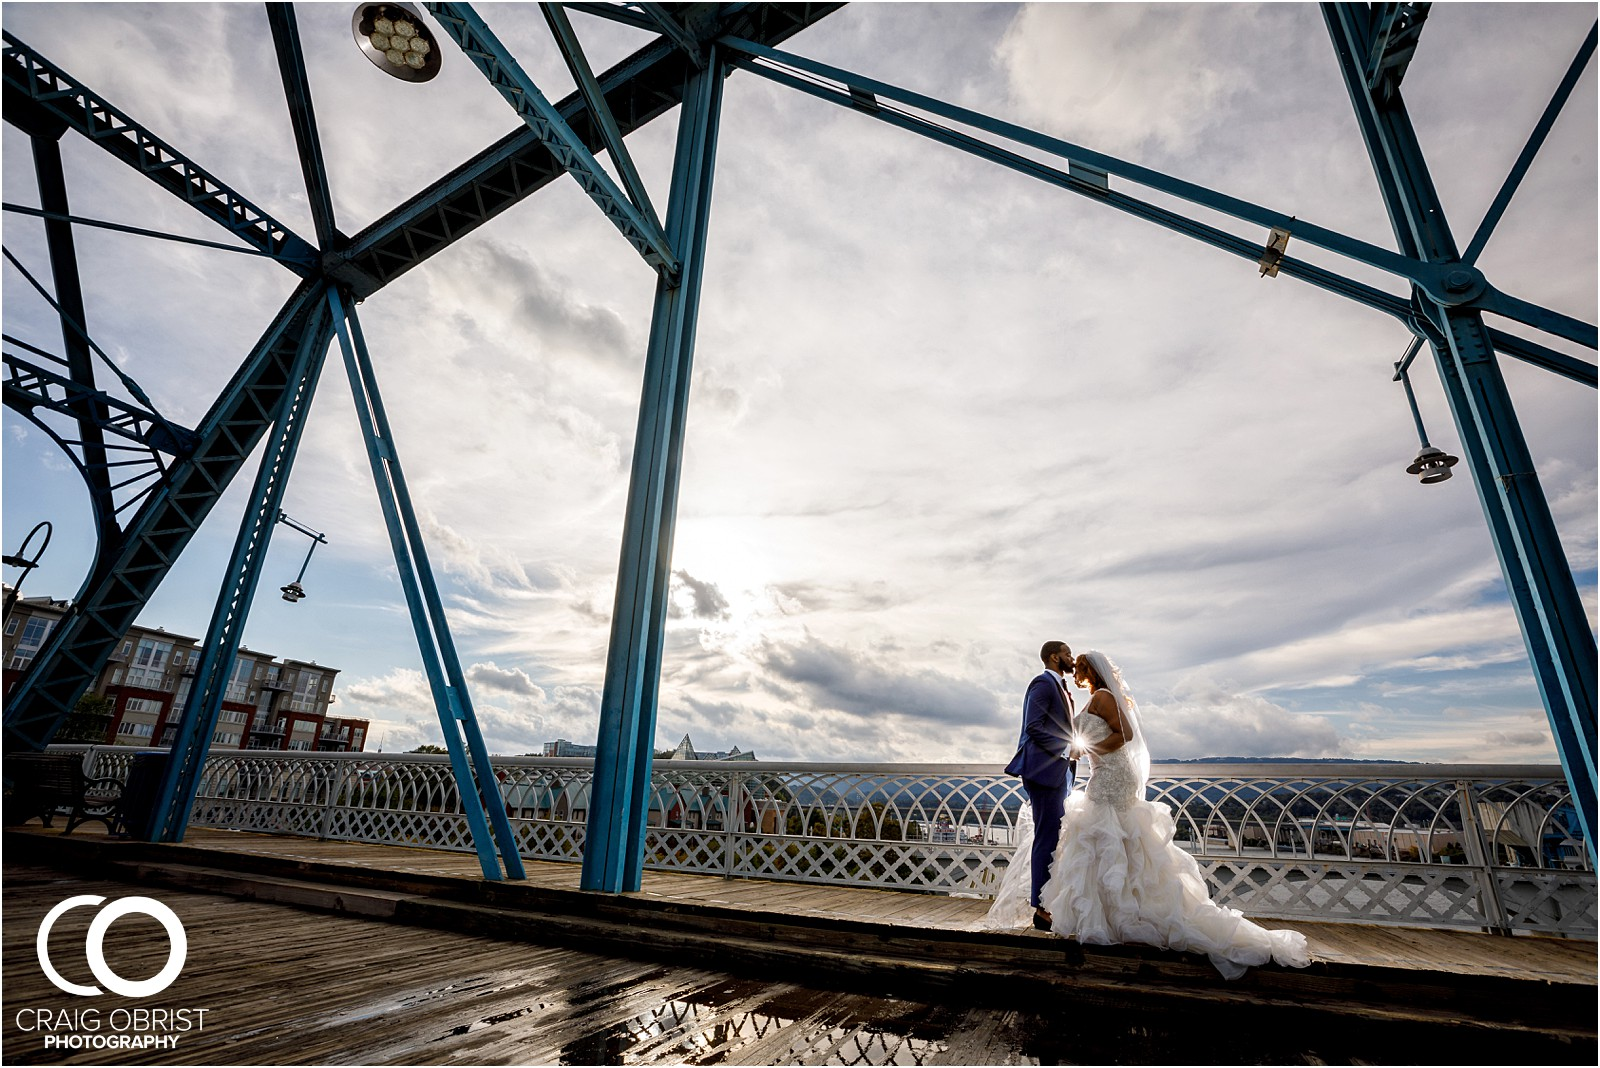 Stratton Hall Chattanooga Walnut Street Bridge Wedding Portraits_0043.jpg